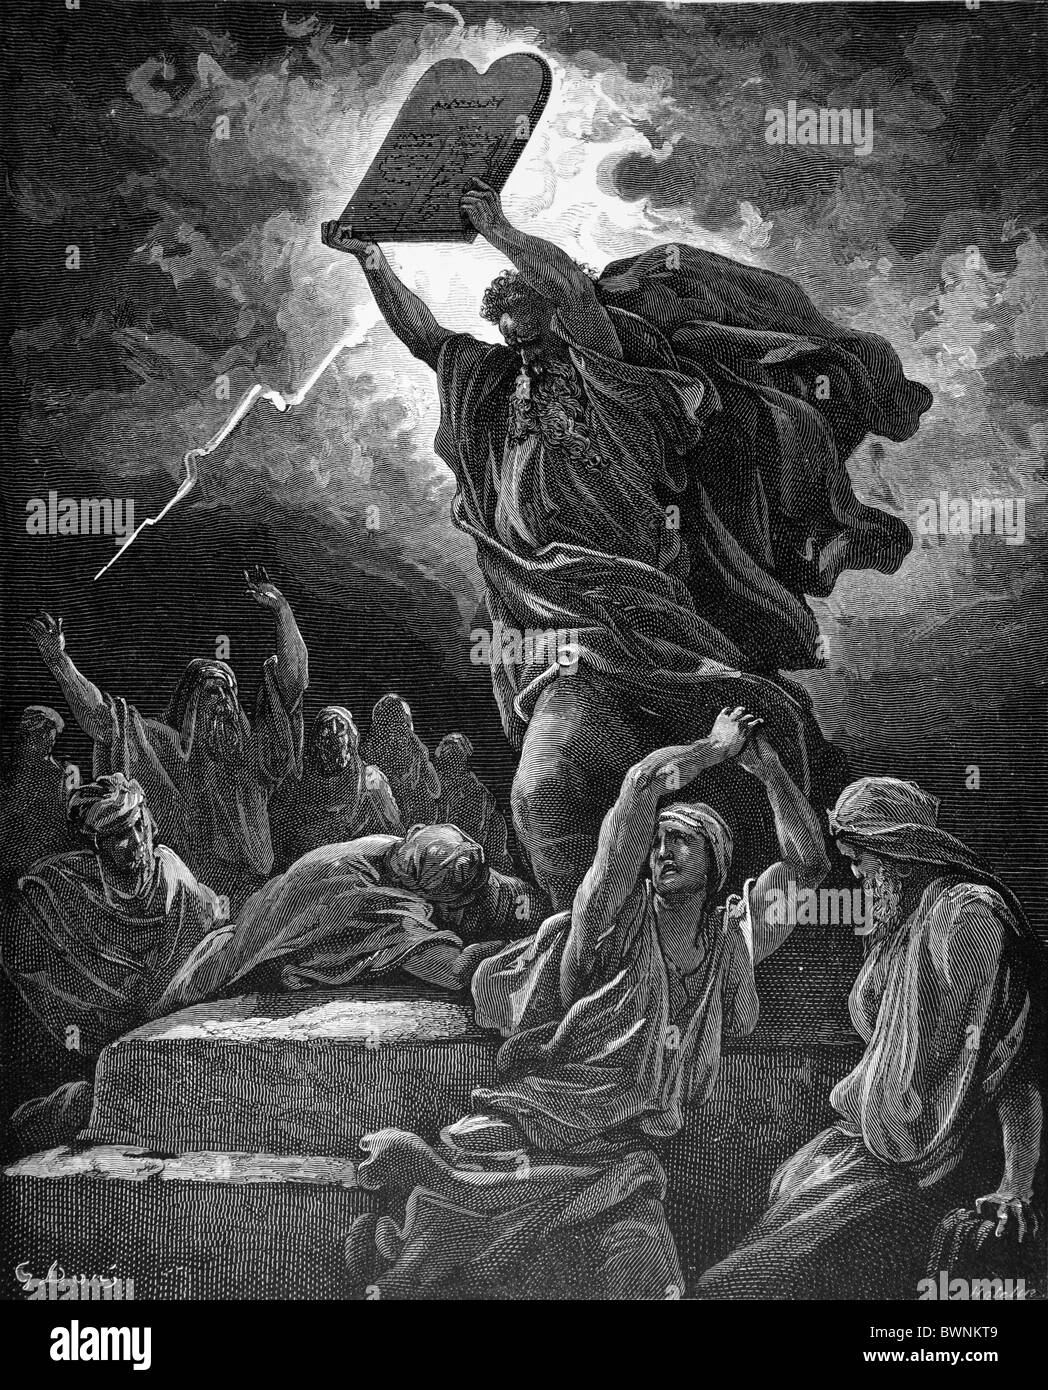 Gustave Doré; Moses Breaking the Tablets of the Law; Black and White Engraving - Stock Image